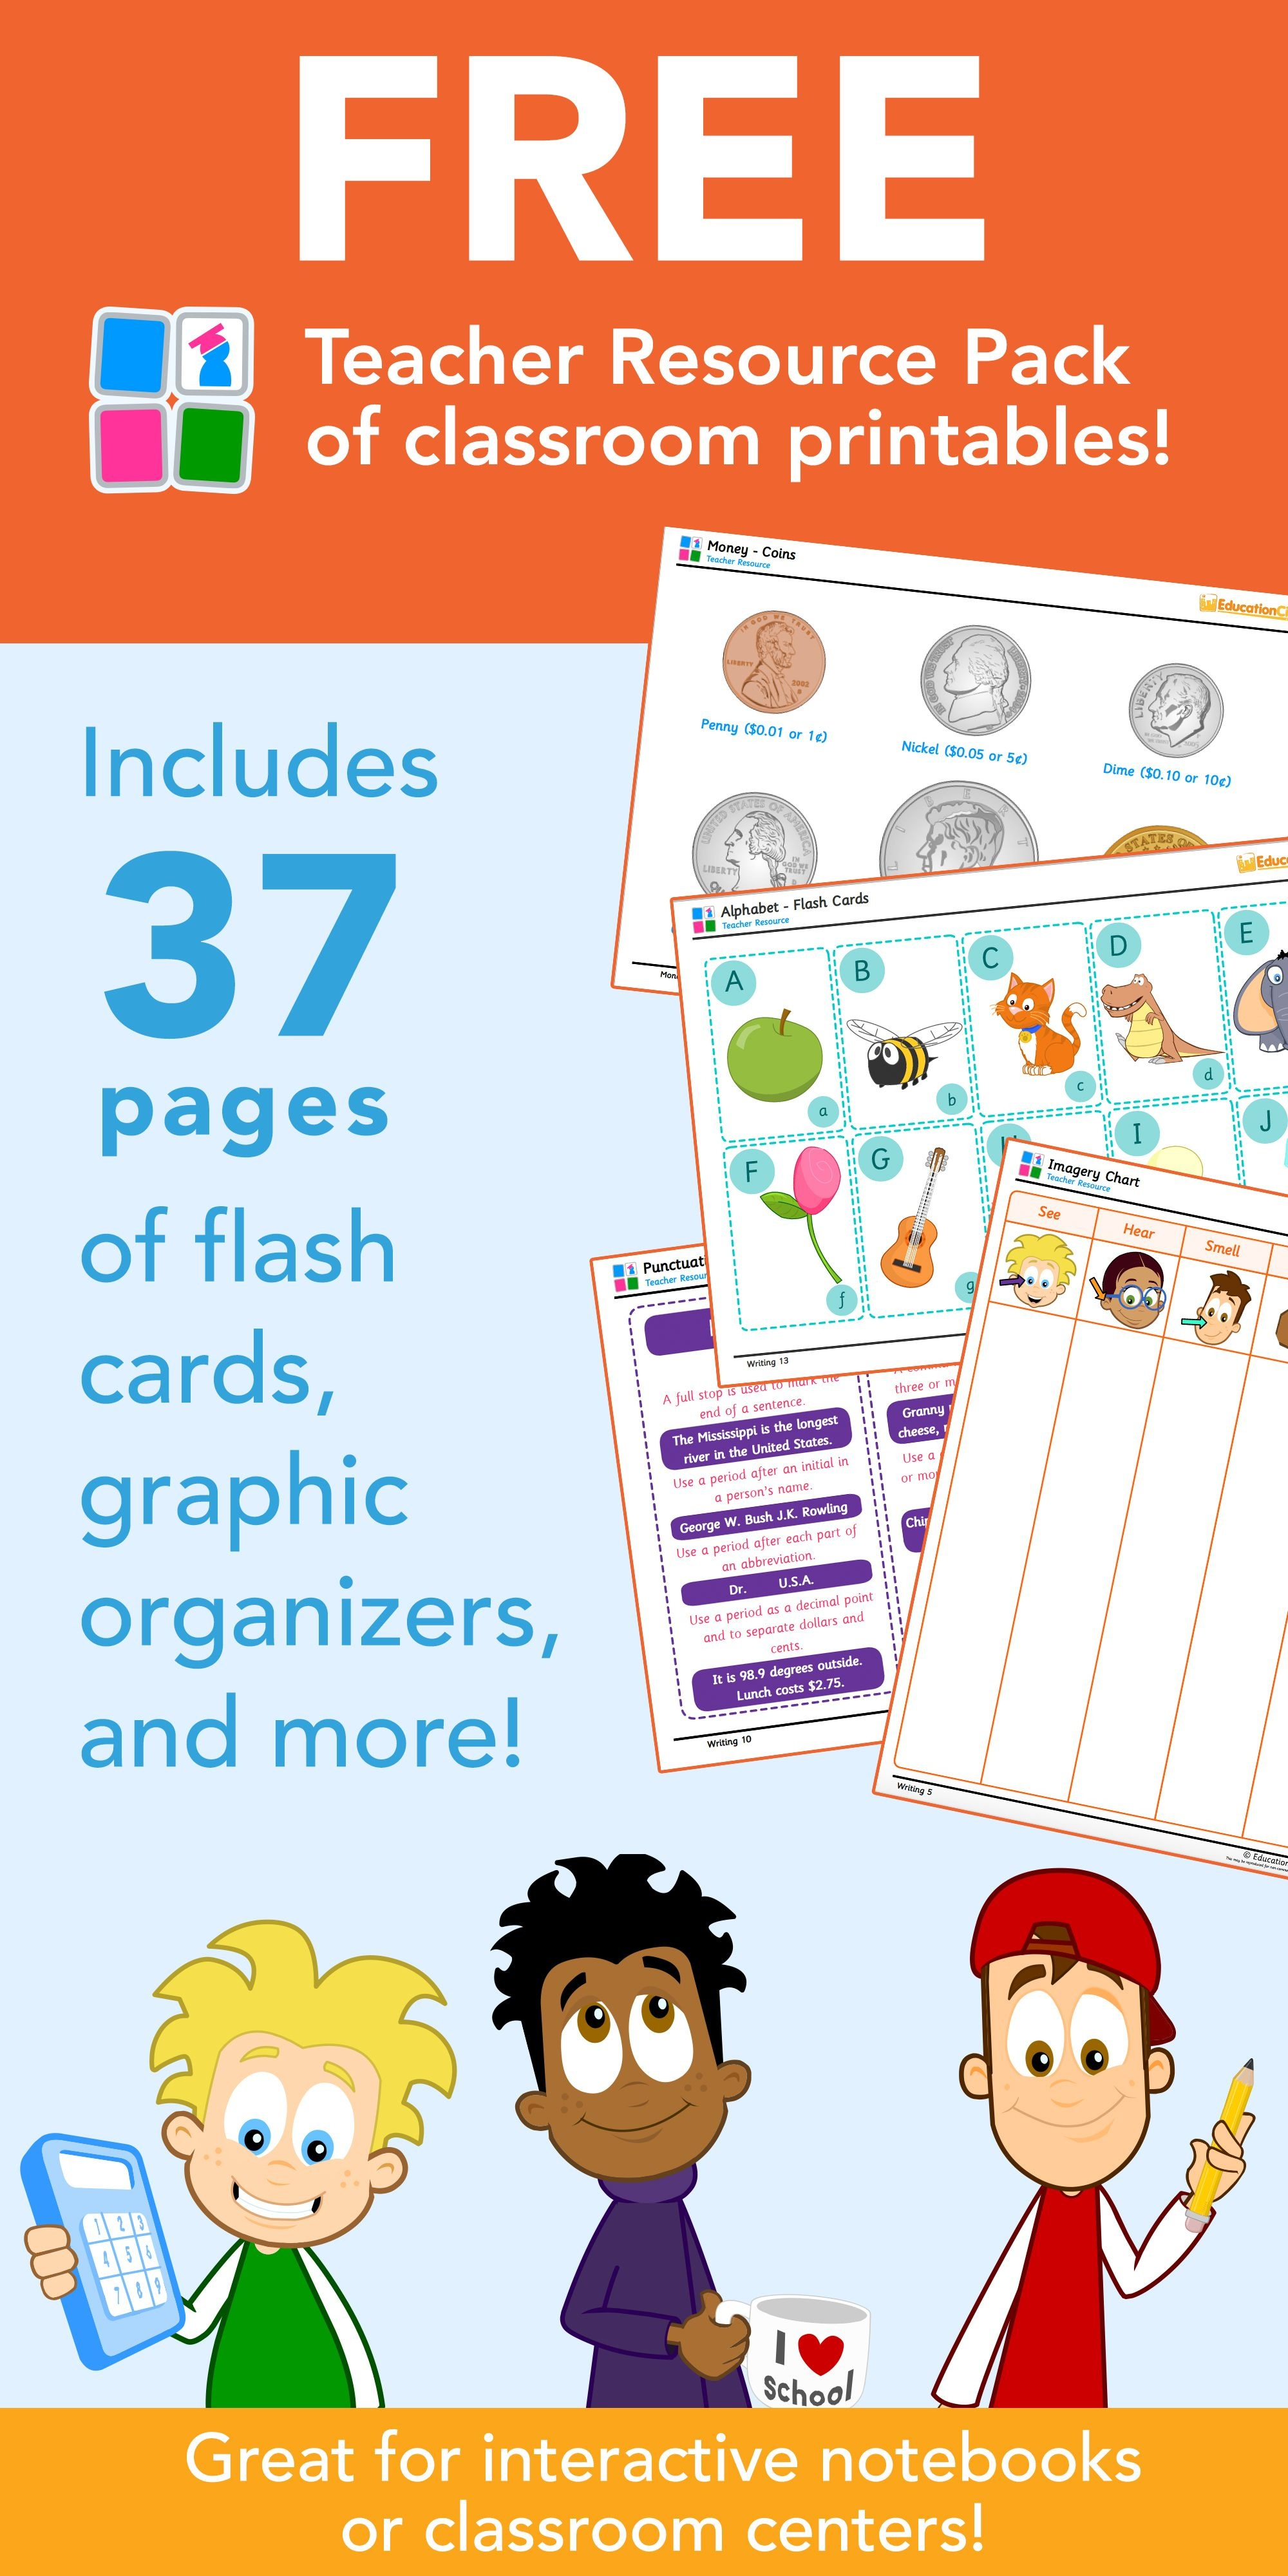 Free Teacher Resource Pack Of Classroom Printables -- 37 Pages Of - Free Teacher Resources Printables